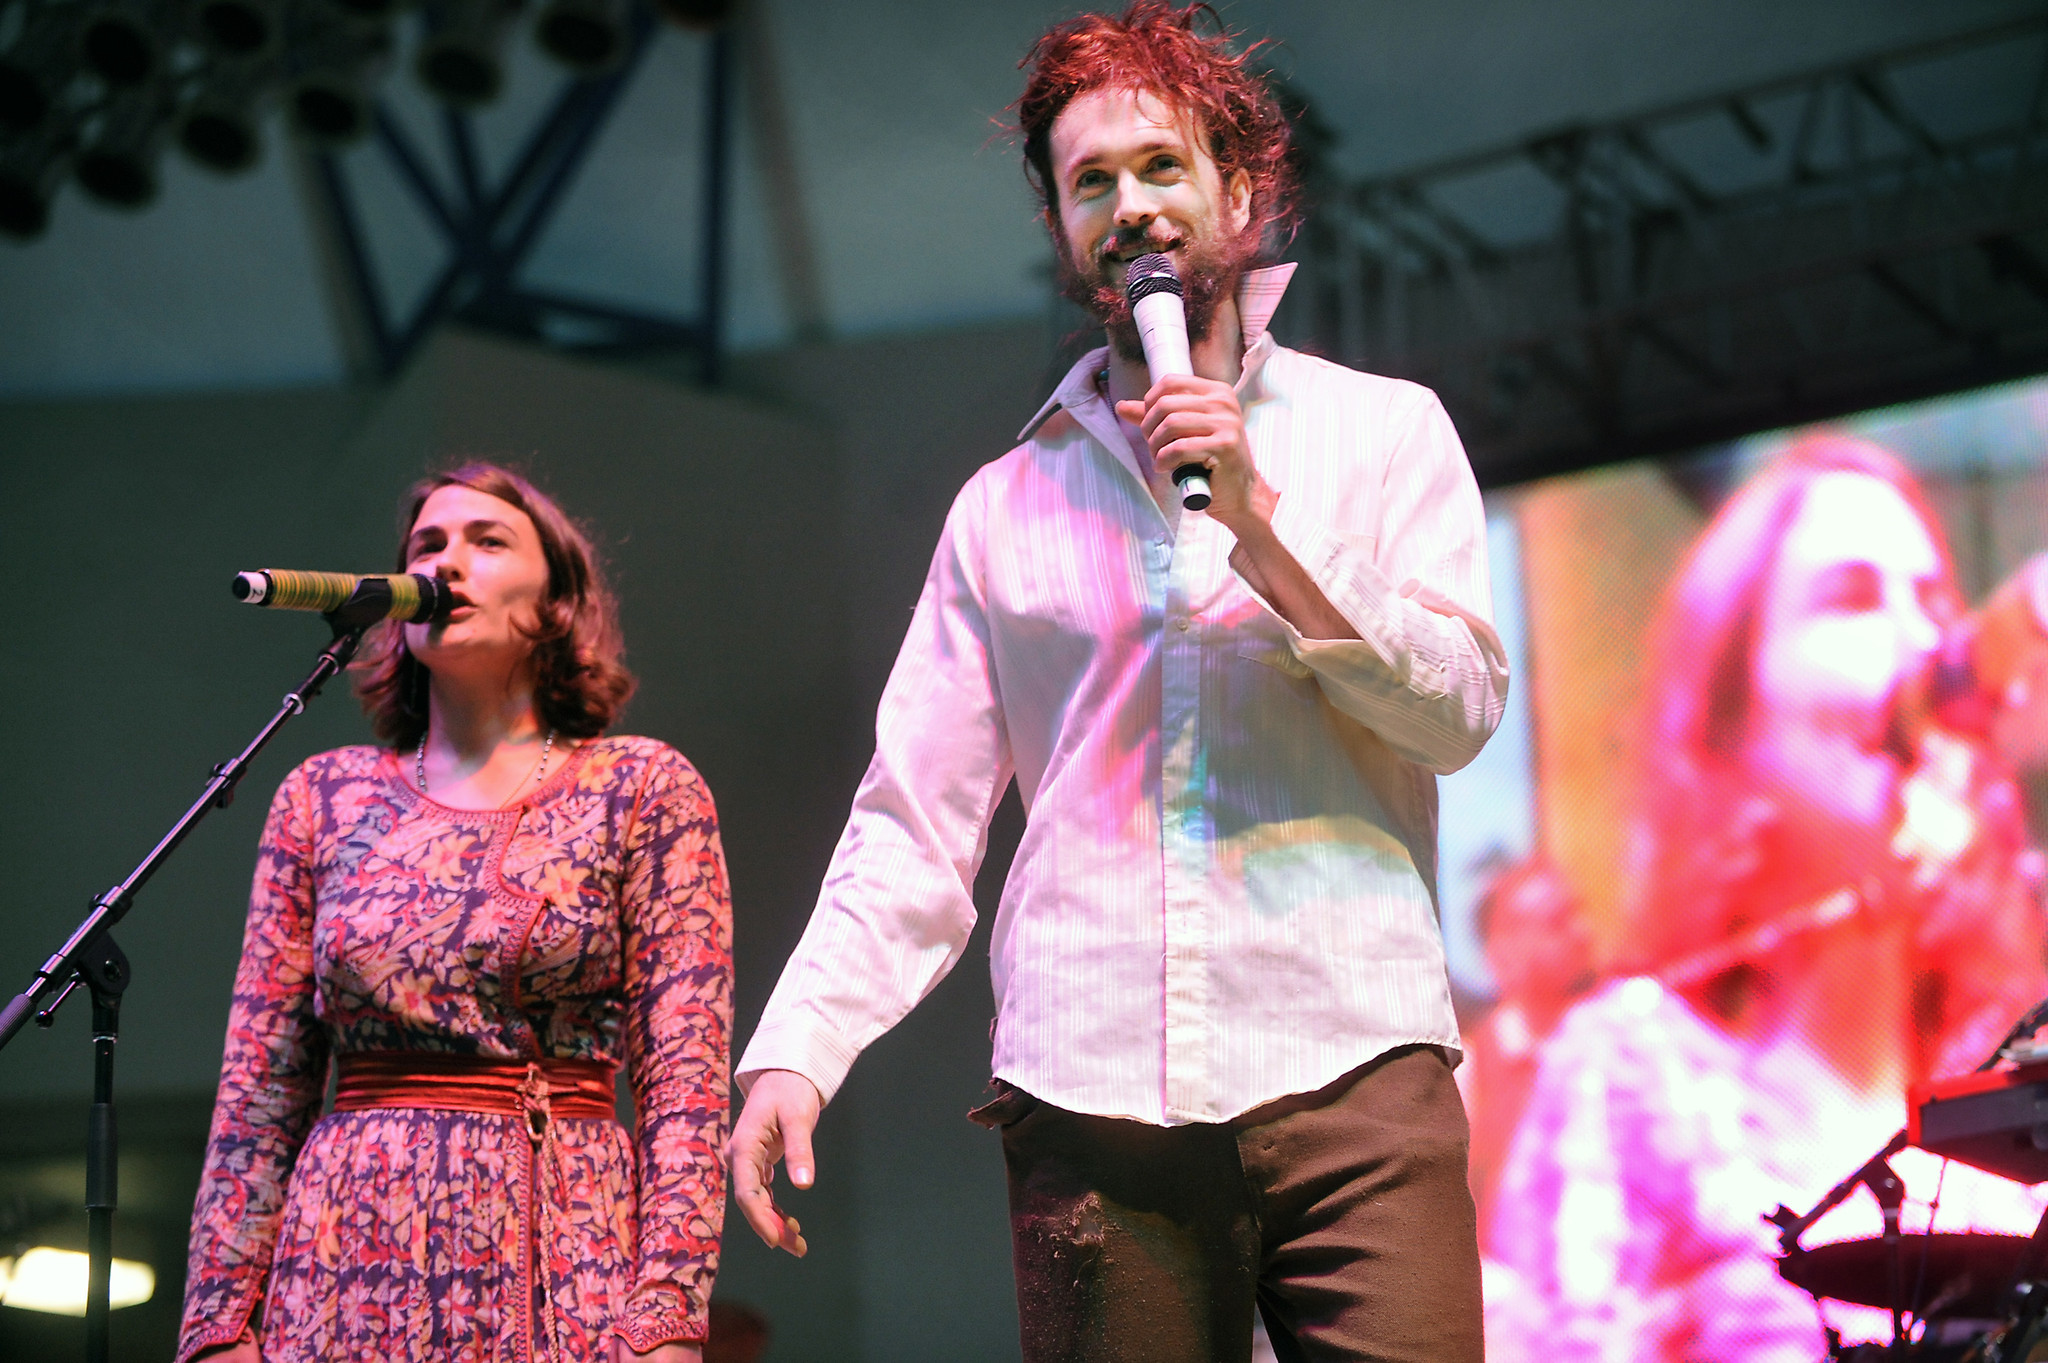 SunFest Music Festival - Edward Sharpe and the Magnetic Zeros